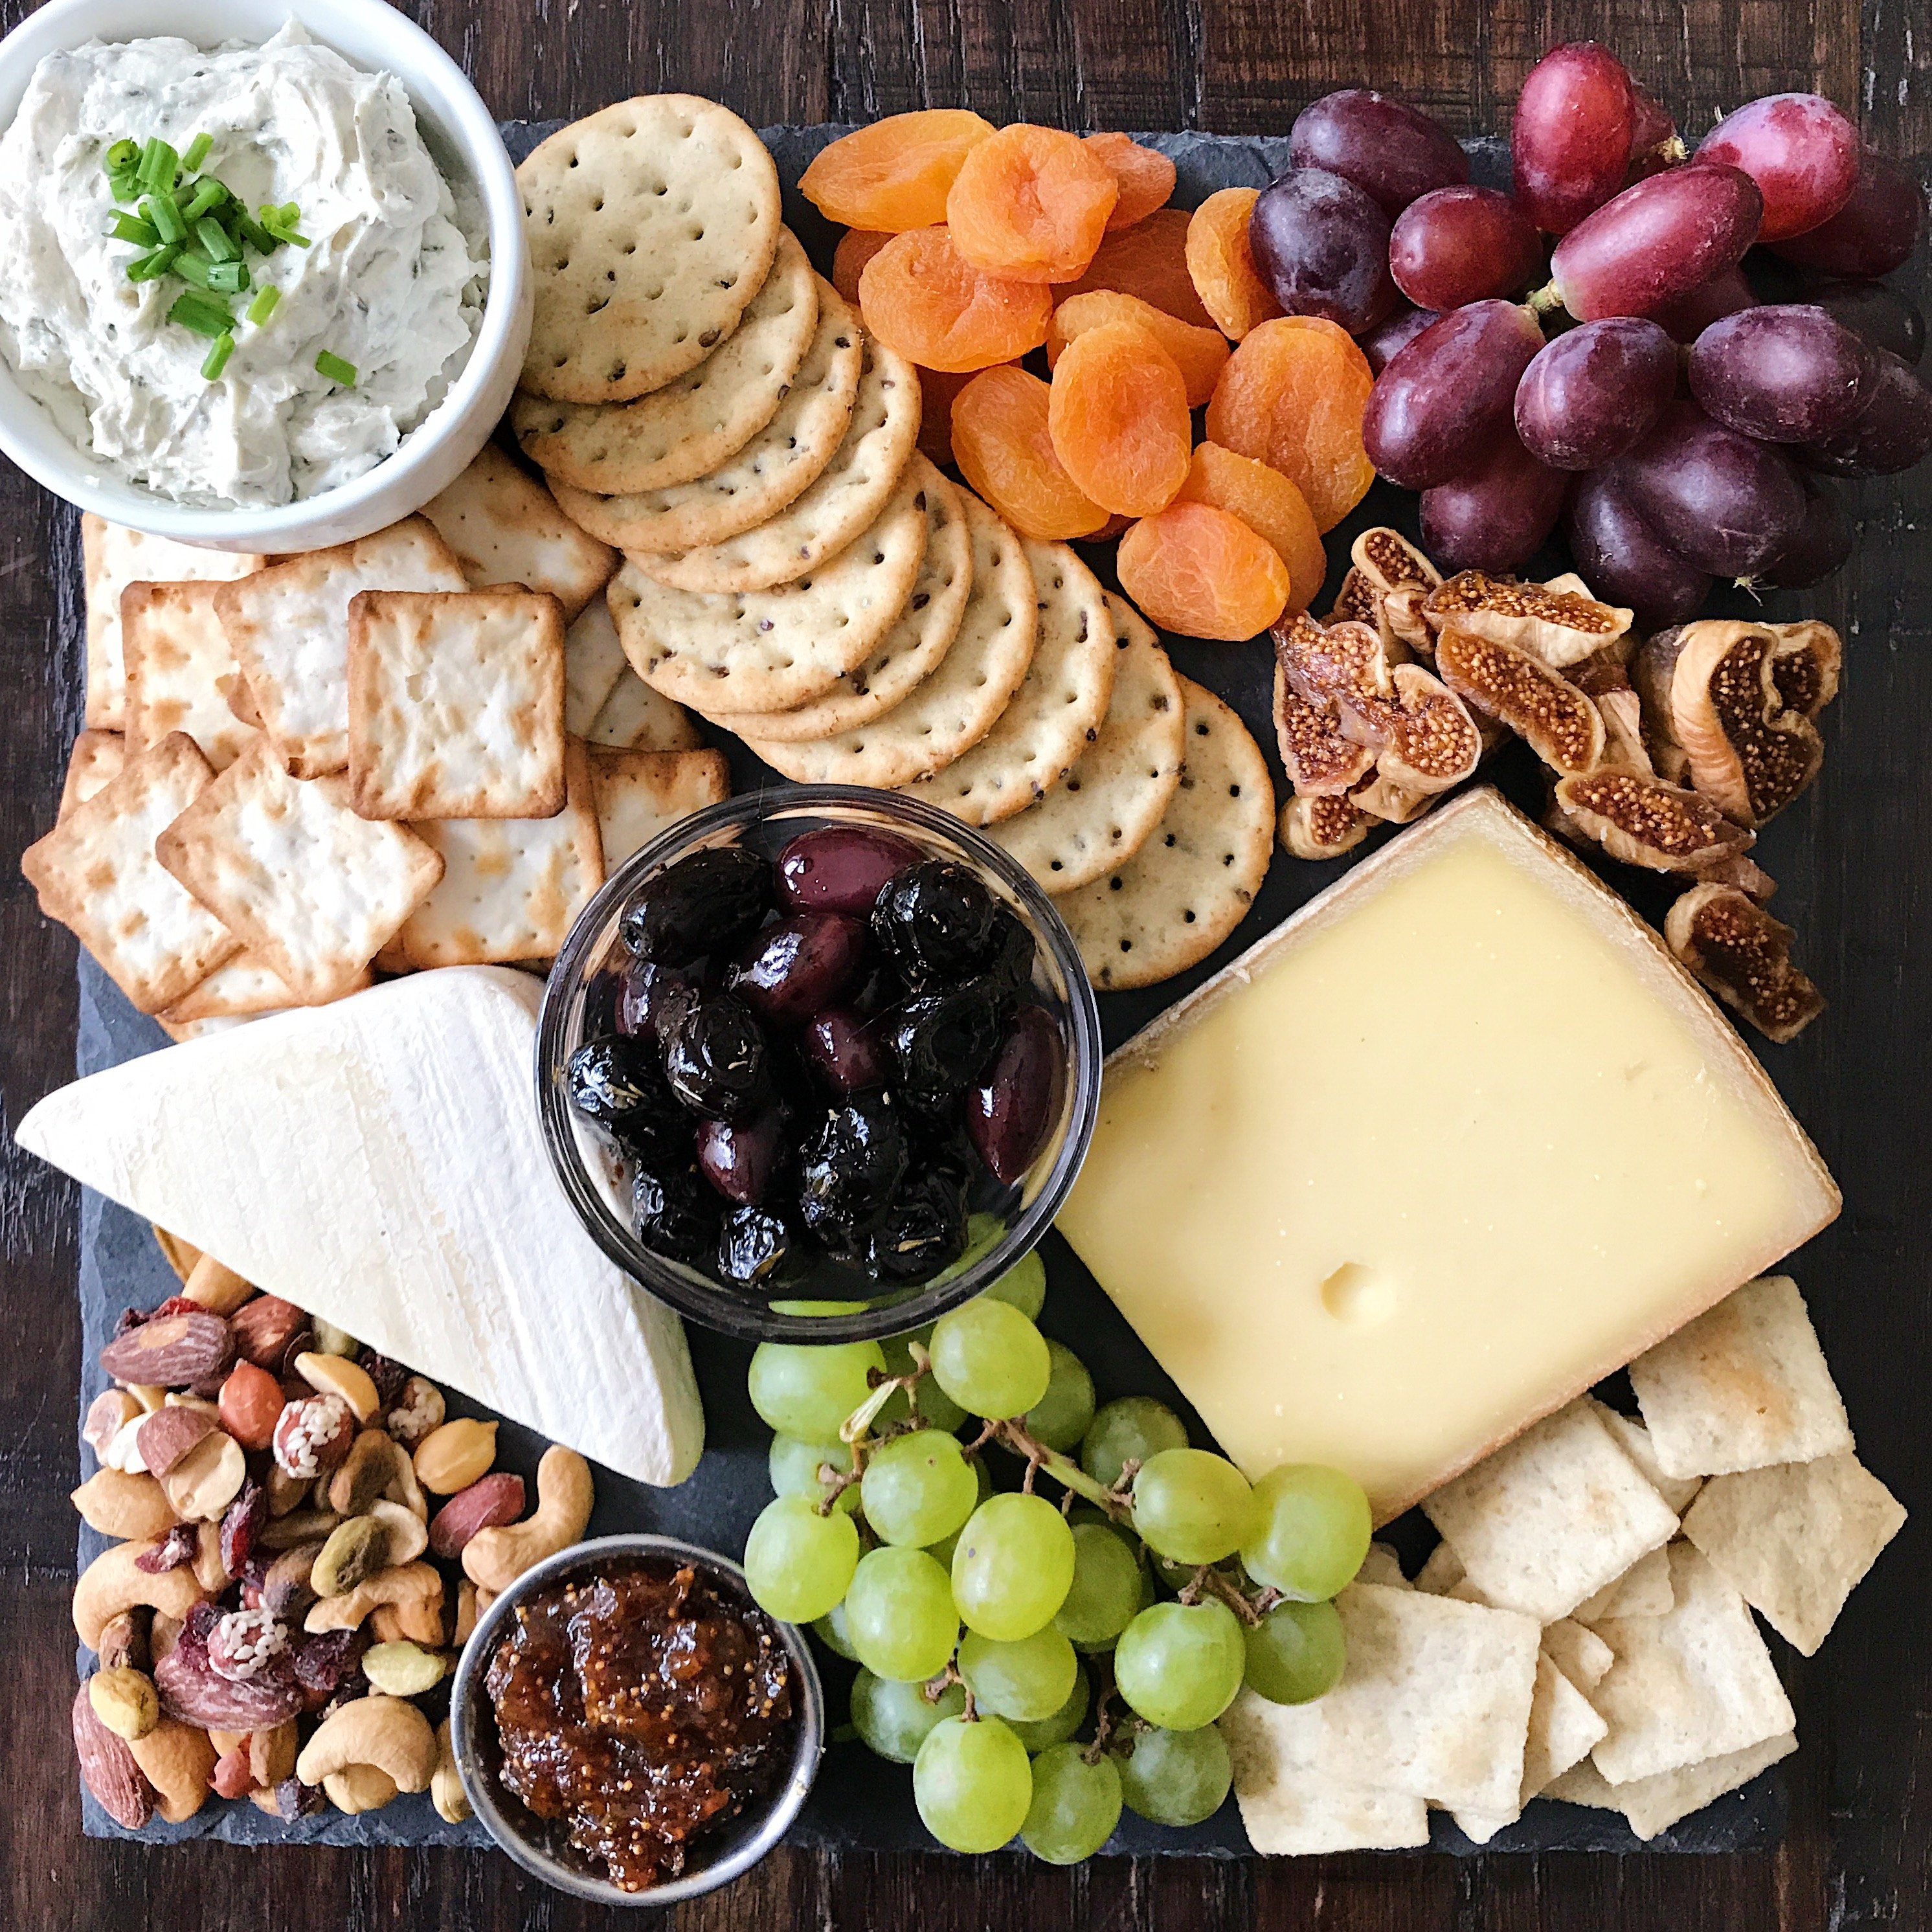 gluten free cheese board how to build #glutenfreerecipes www.healthygffamily.com